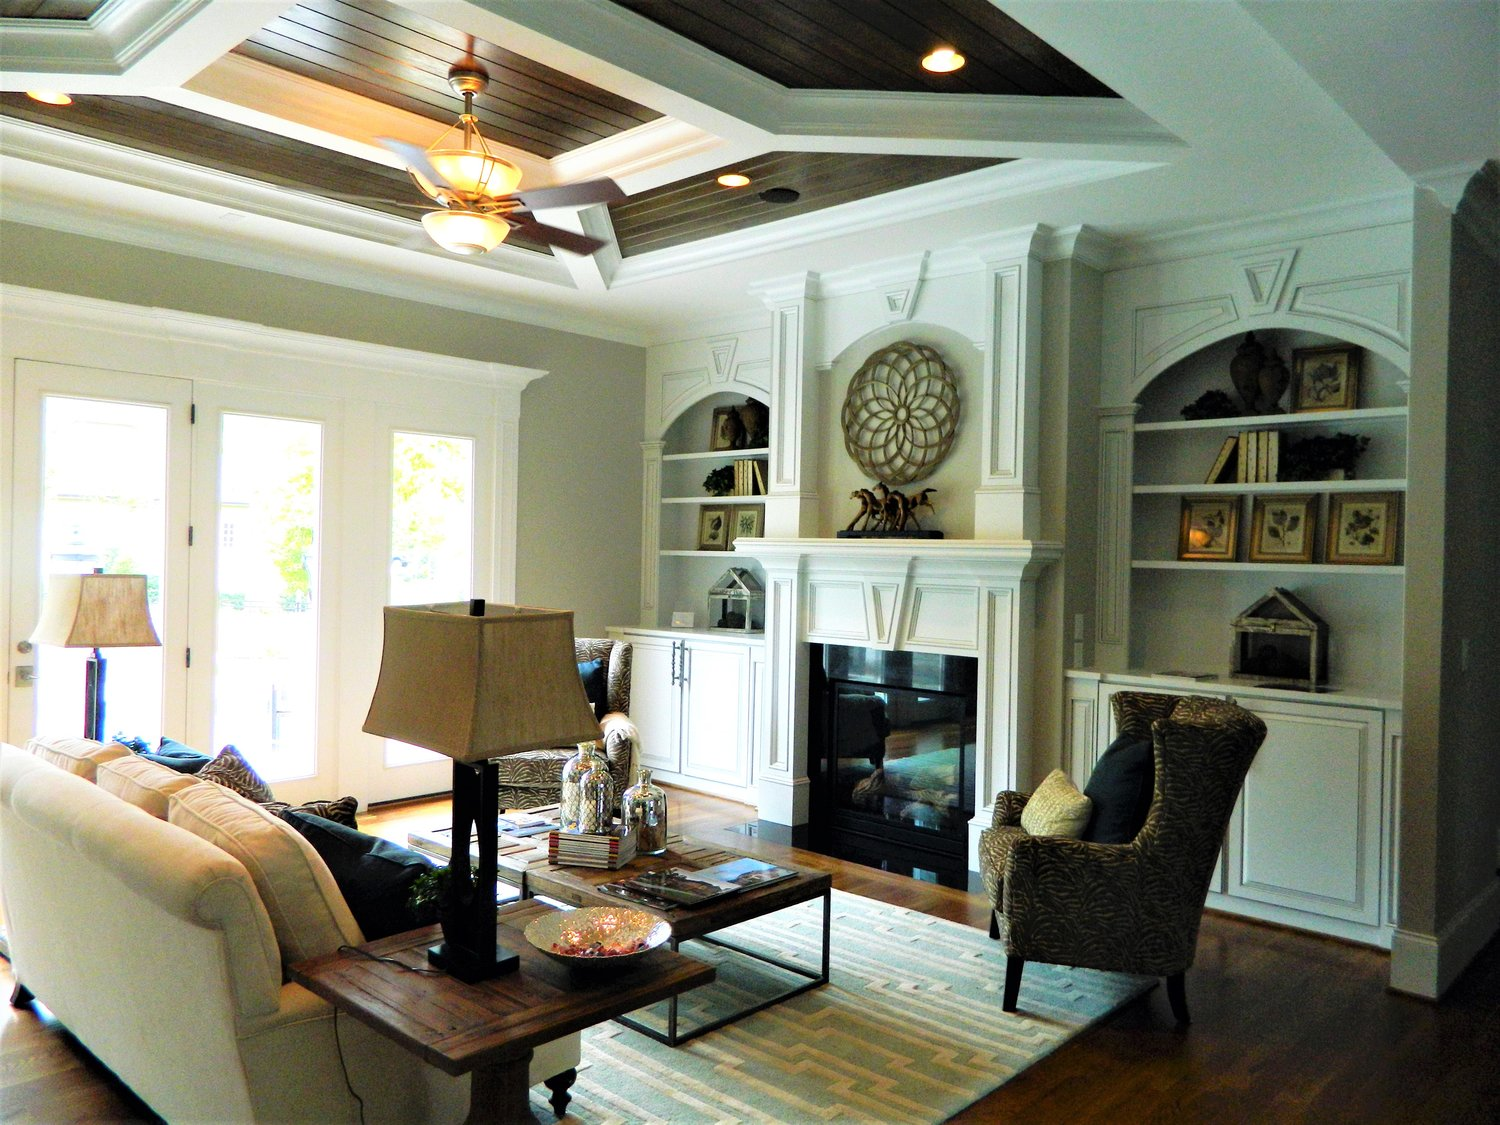 Fireplace Built-In with Adjustable Shelves, Raised Panel Doors, Applied Panel Detail, Keystone, Columns, and Crown